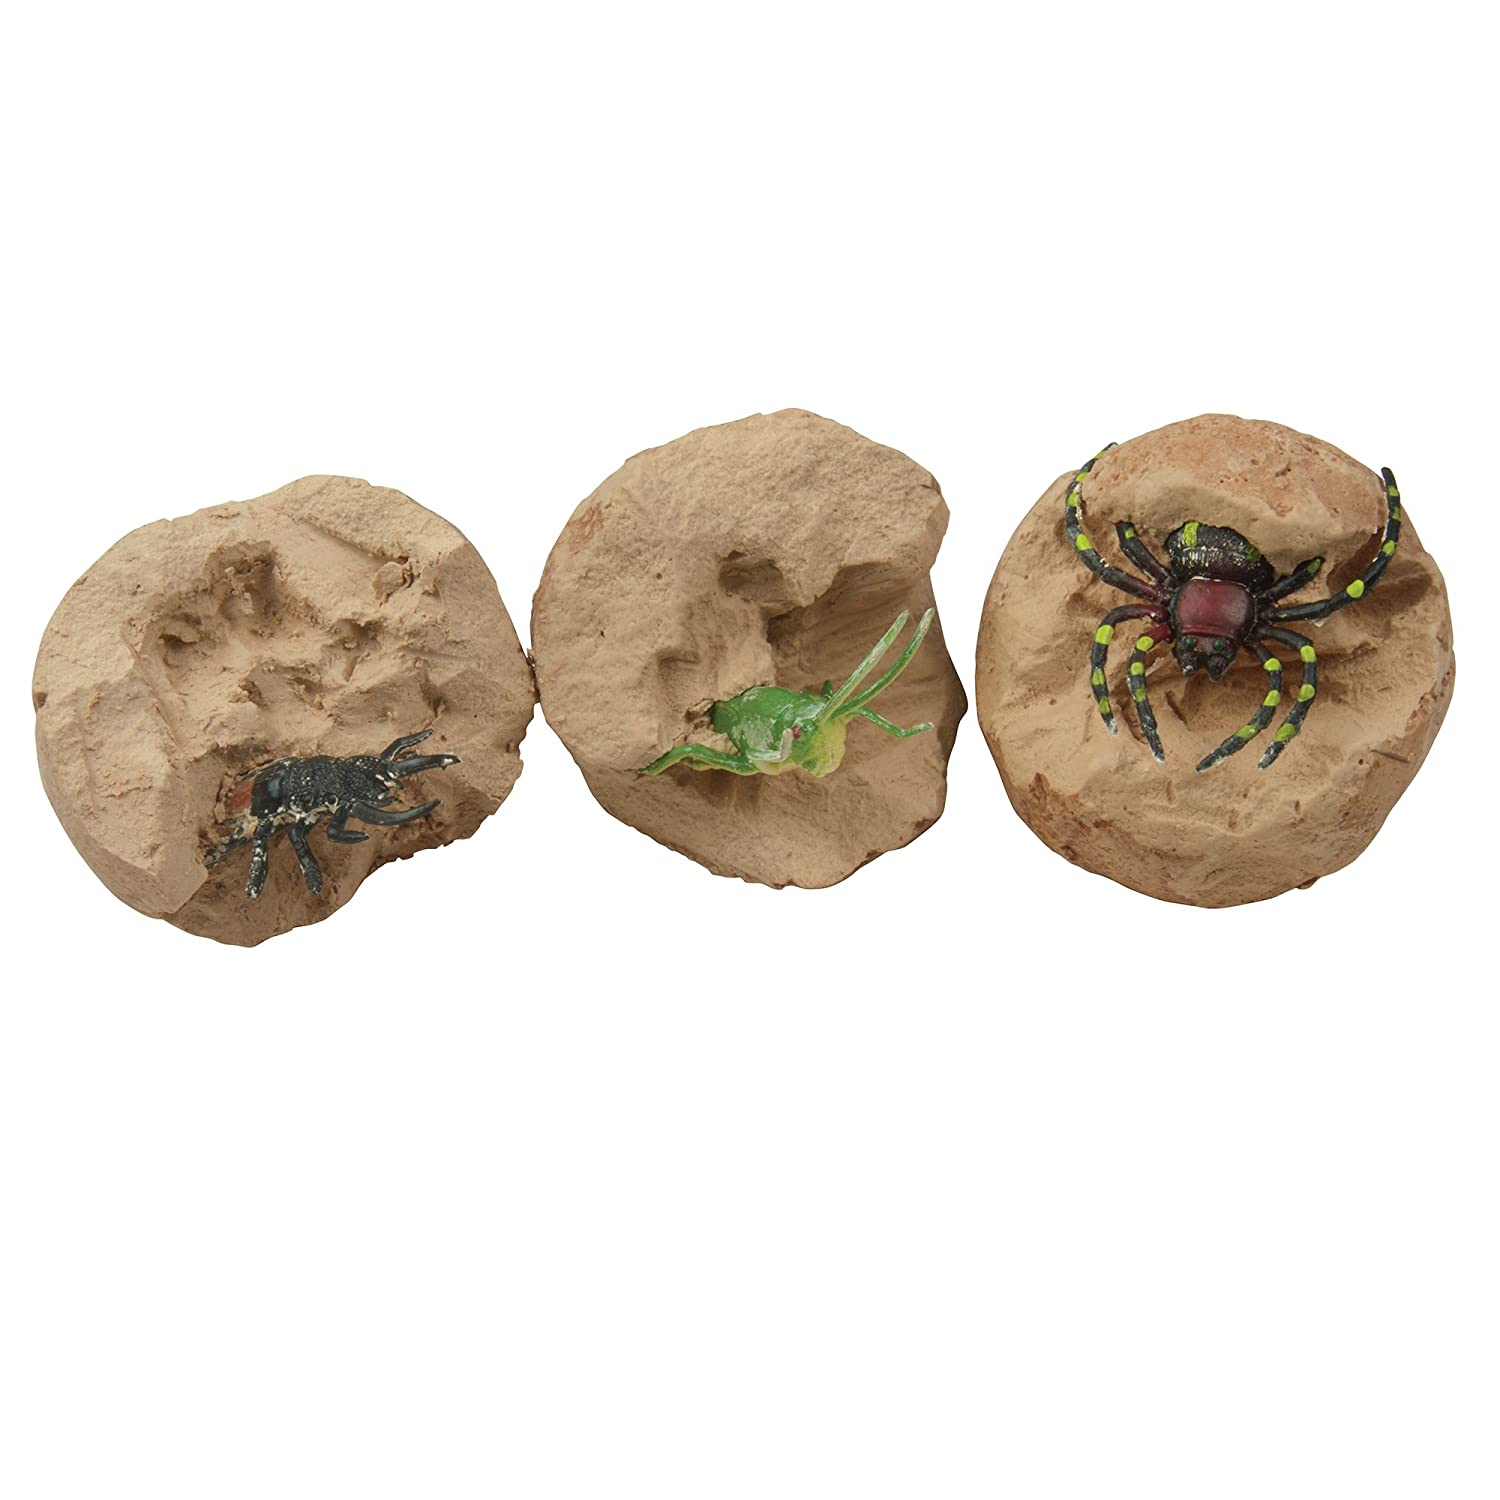 Dig it Up Big Bugs and Minerals Set of 3 Dig Kit Dinosaur Eggs